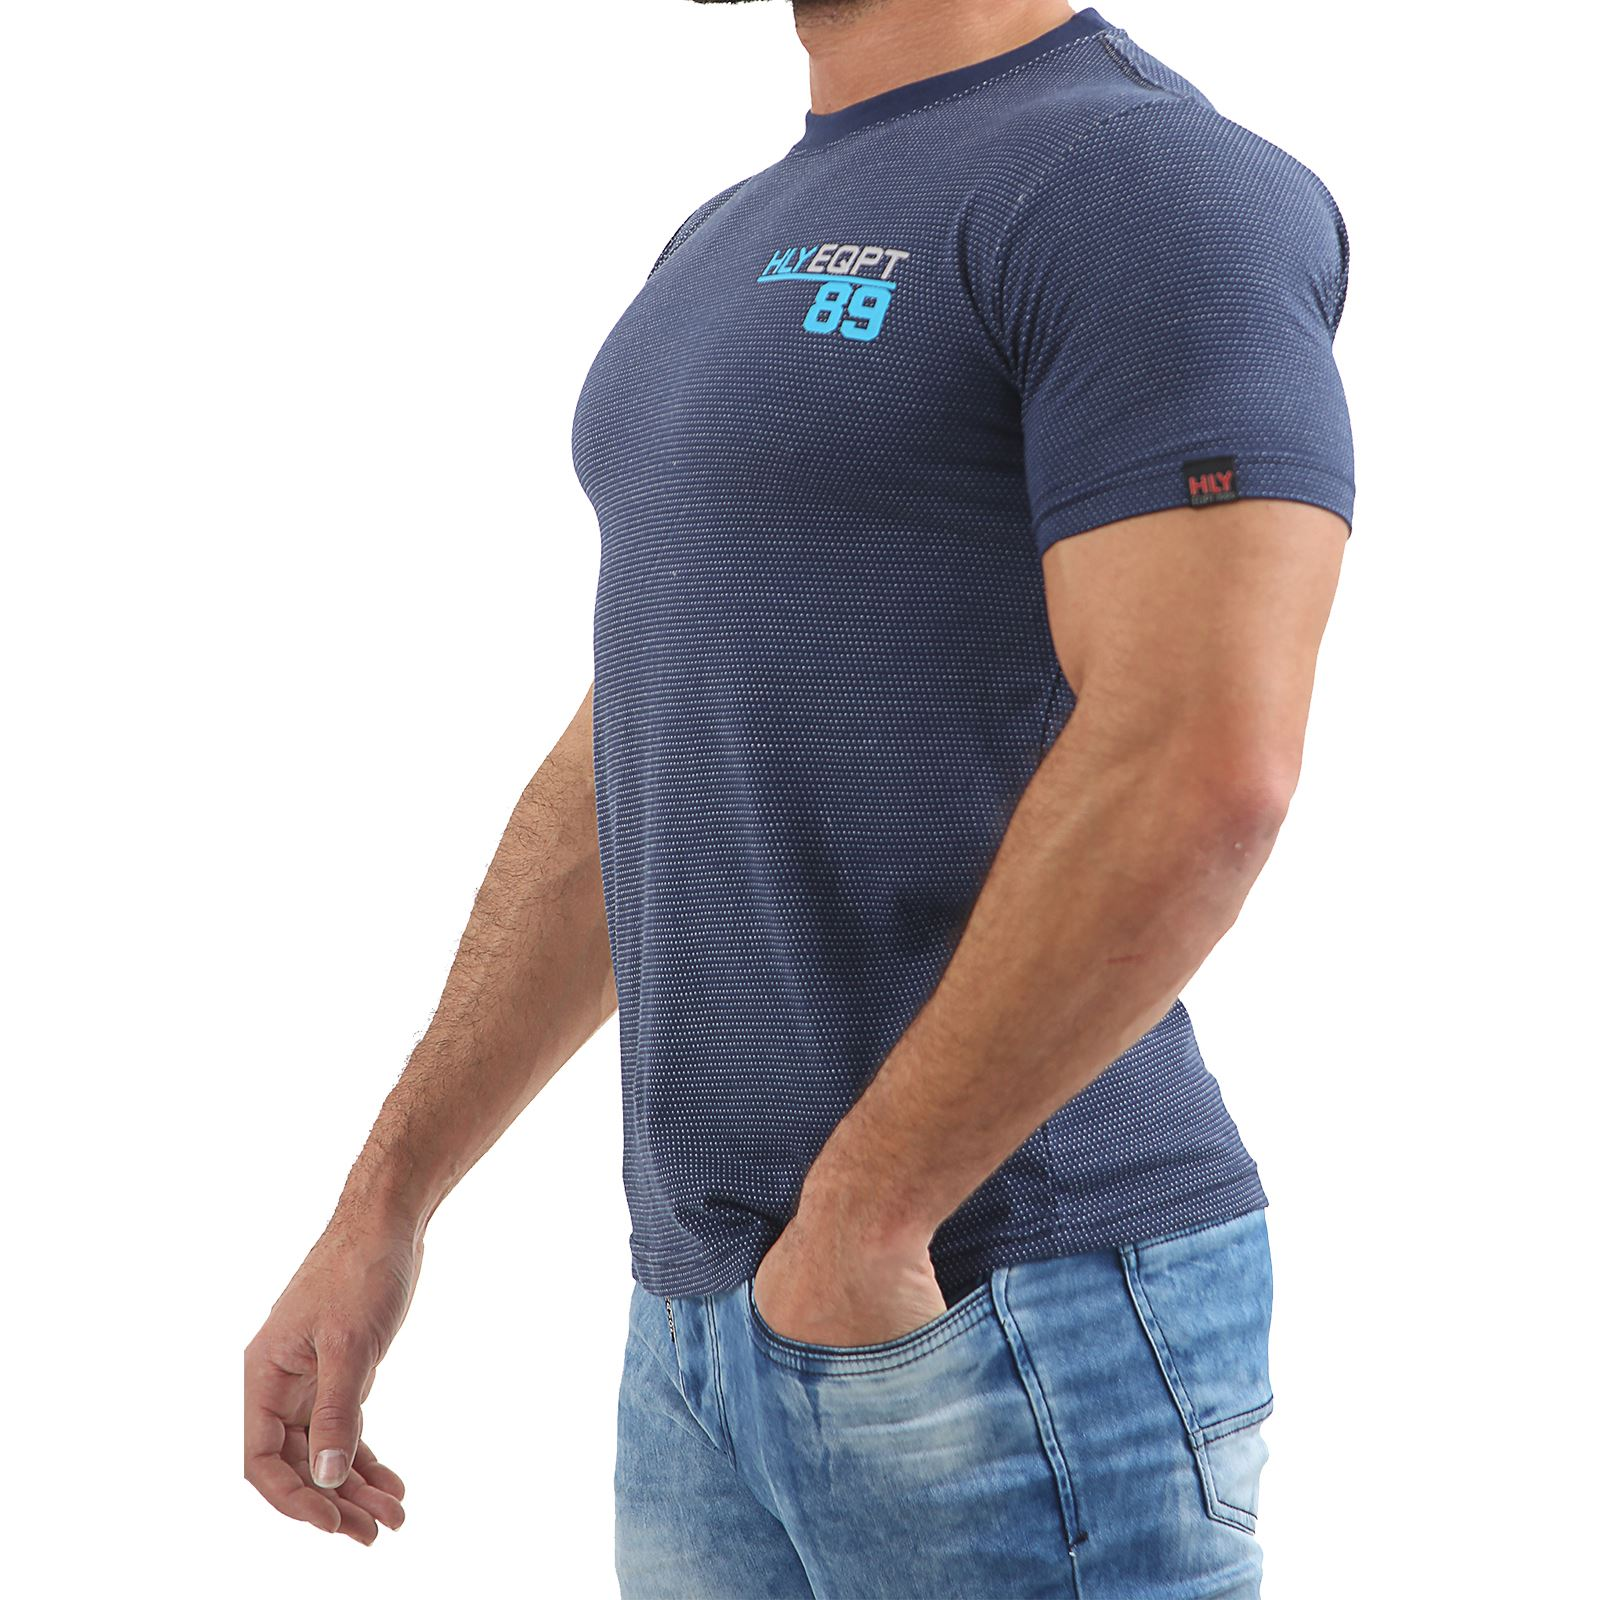 Mens-HLY-EQPT-Printed-T-Shirt-100-Cotton-Gym-Athletic-Training-Tee-Top-Summer thumbnail 37